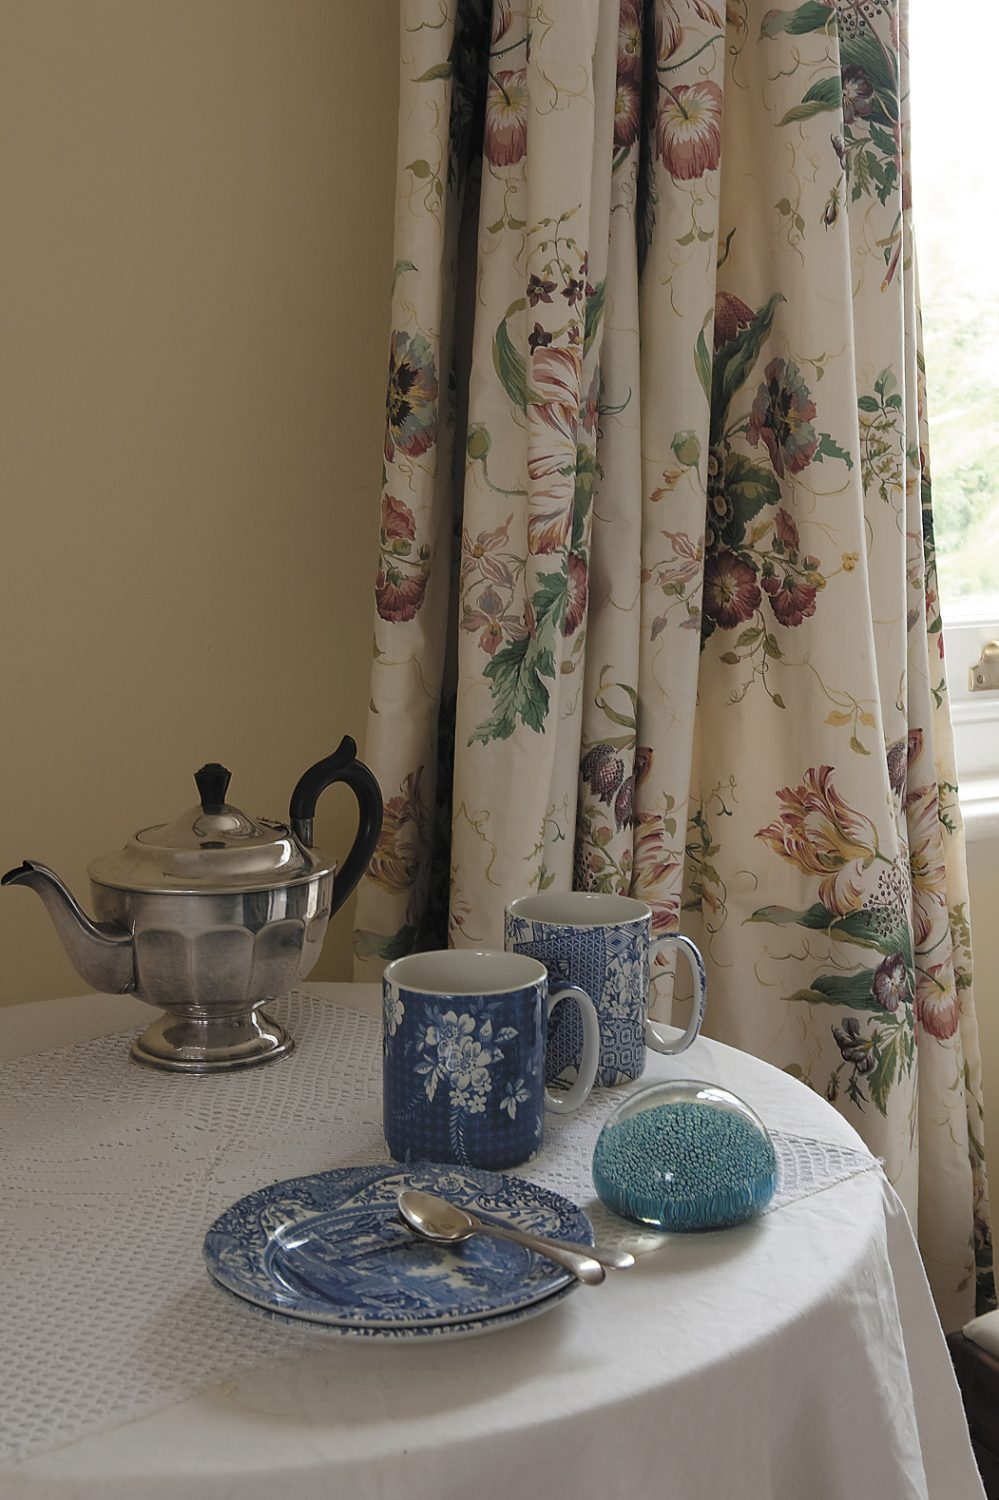 silver teapots and fine bone china are just some of the luxuries enjoyed by guests in the tulip bedroom